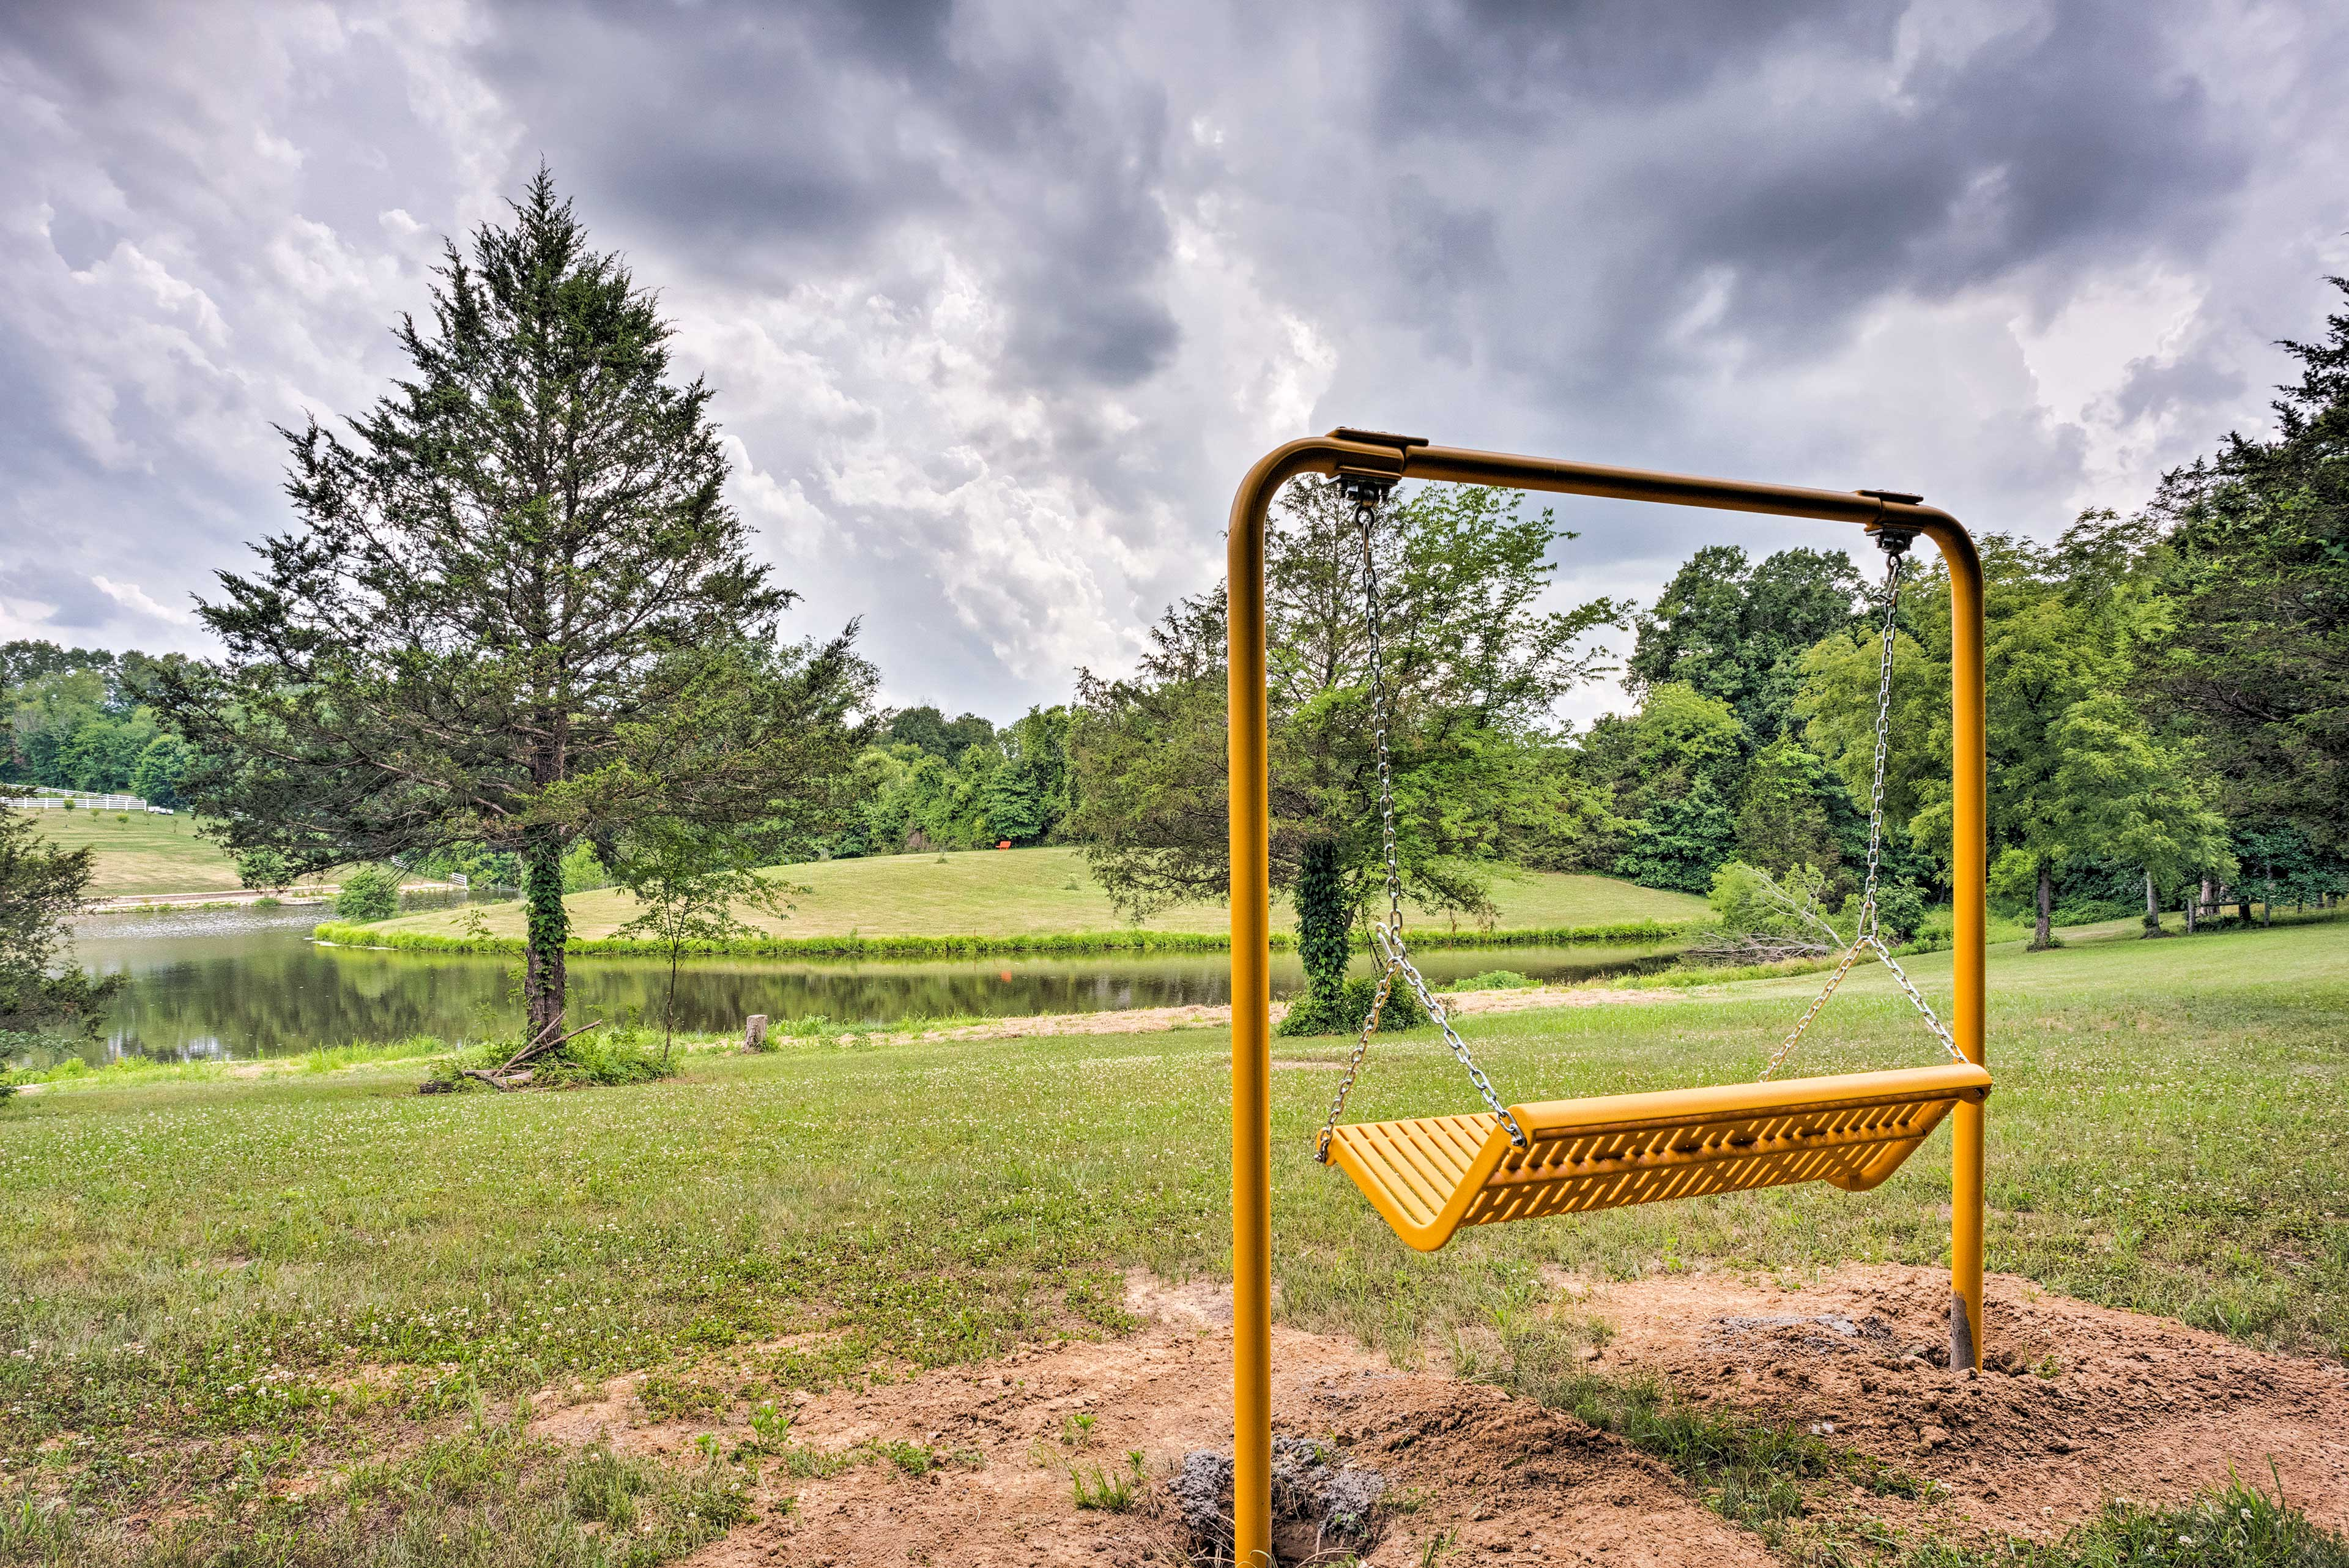 This swing offers unforgettable views of the pond.